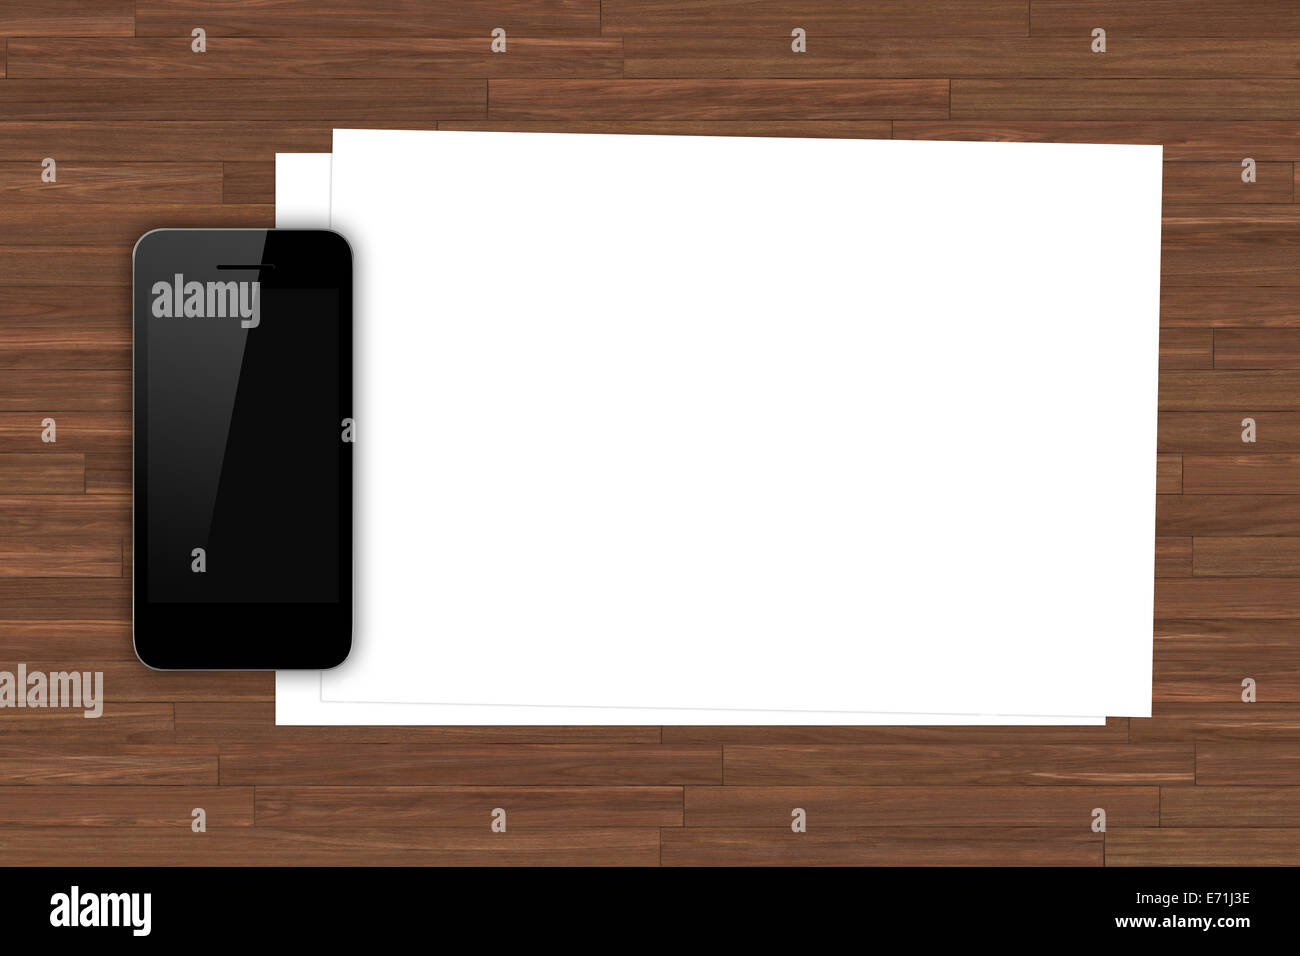 Smart phone with blank black screen and white blank sheet on wooden table. - Stock Image